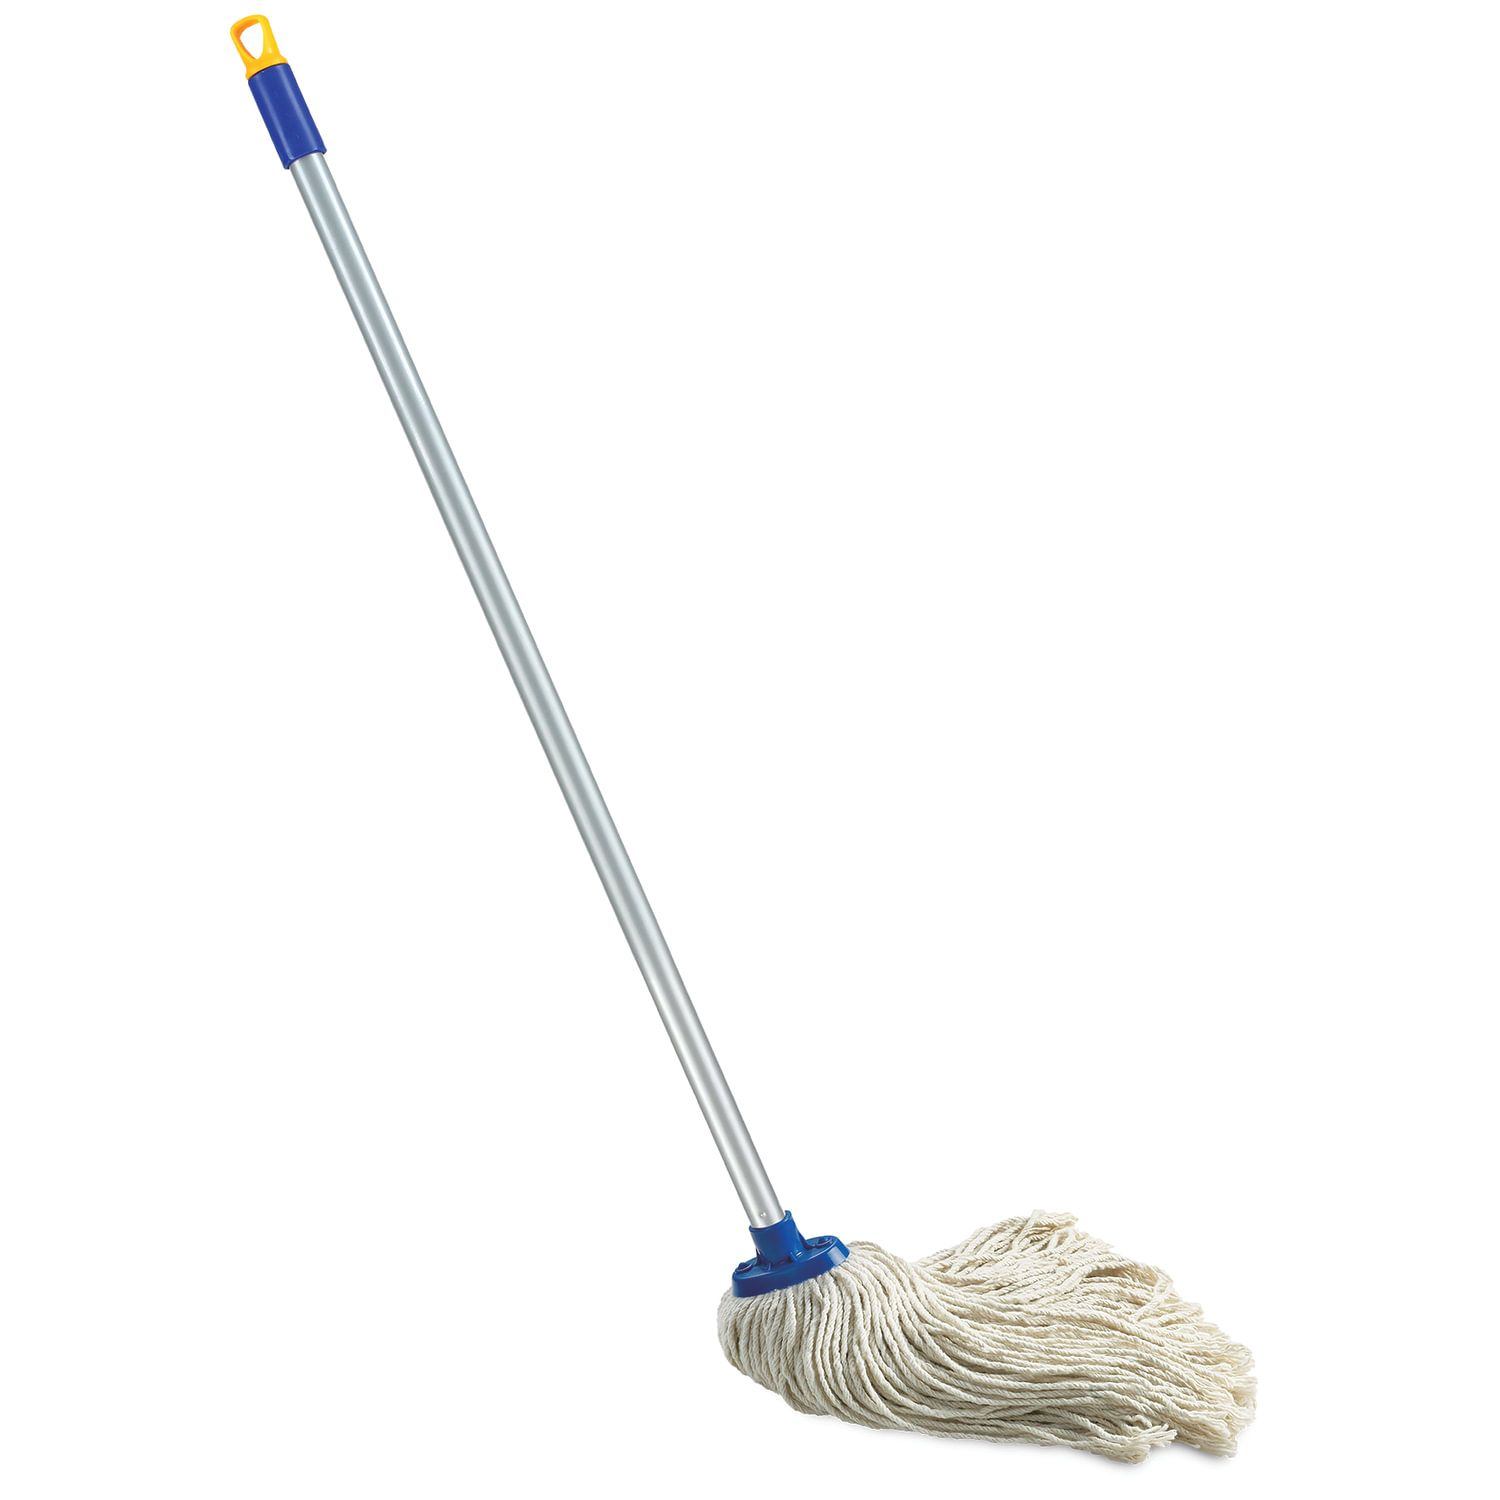 LIME / Mop with rope attachment, handle 120 cm, euro thread, 165 g (cotton), pile 26 cm